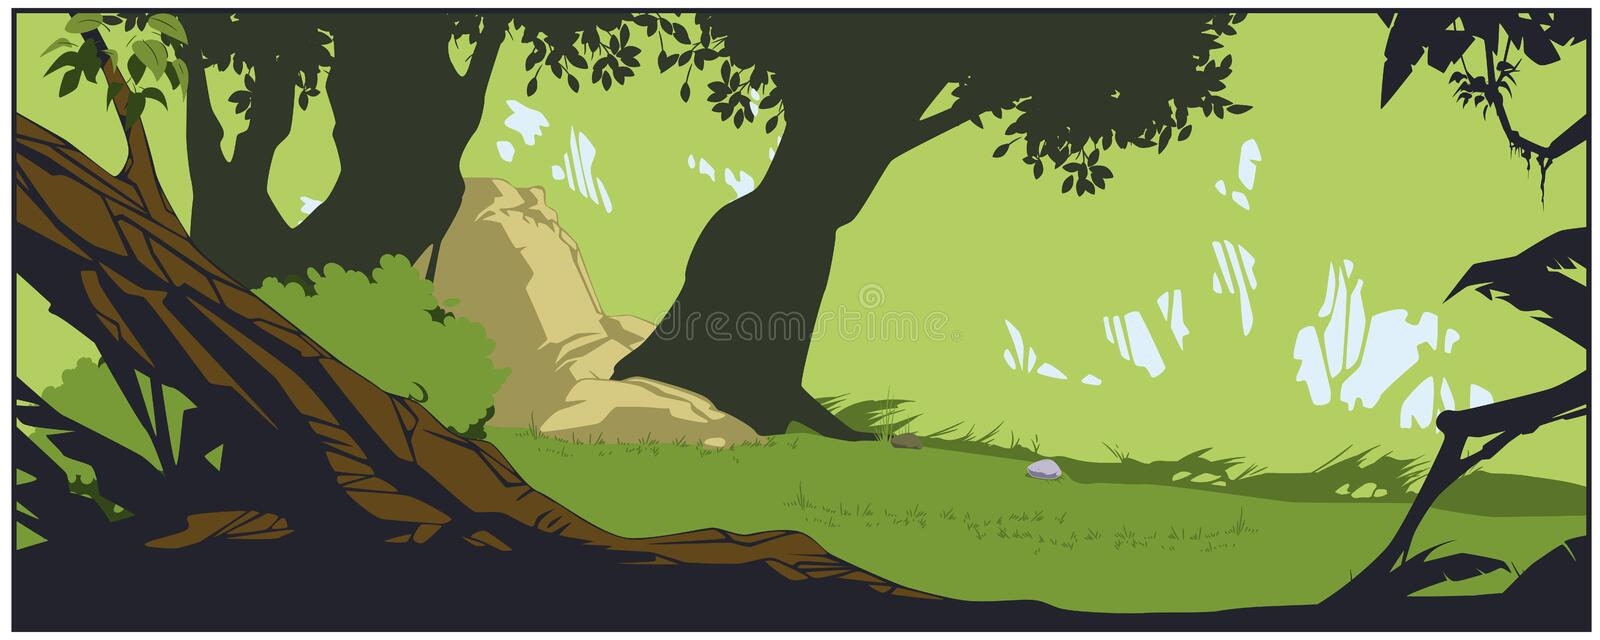 We ship worldwide.landscape showing dense forest painting is available for sale online at fizdi.com. Nature Background Fantasy Landscape Dense Forest Stock Vector Illustration Of Trees Tranquil 201377667